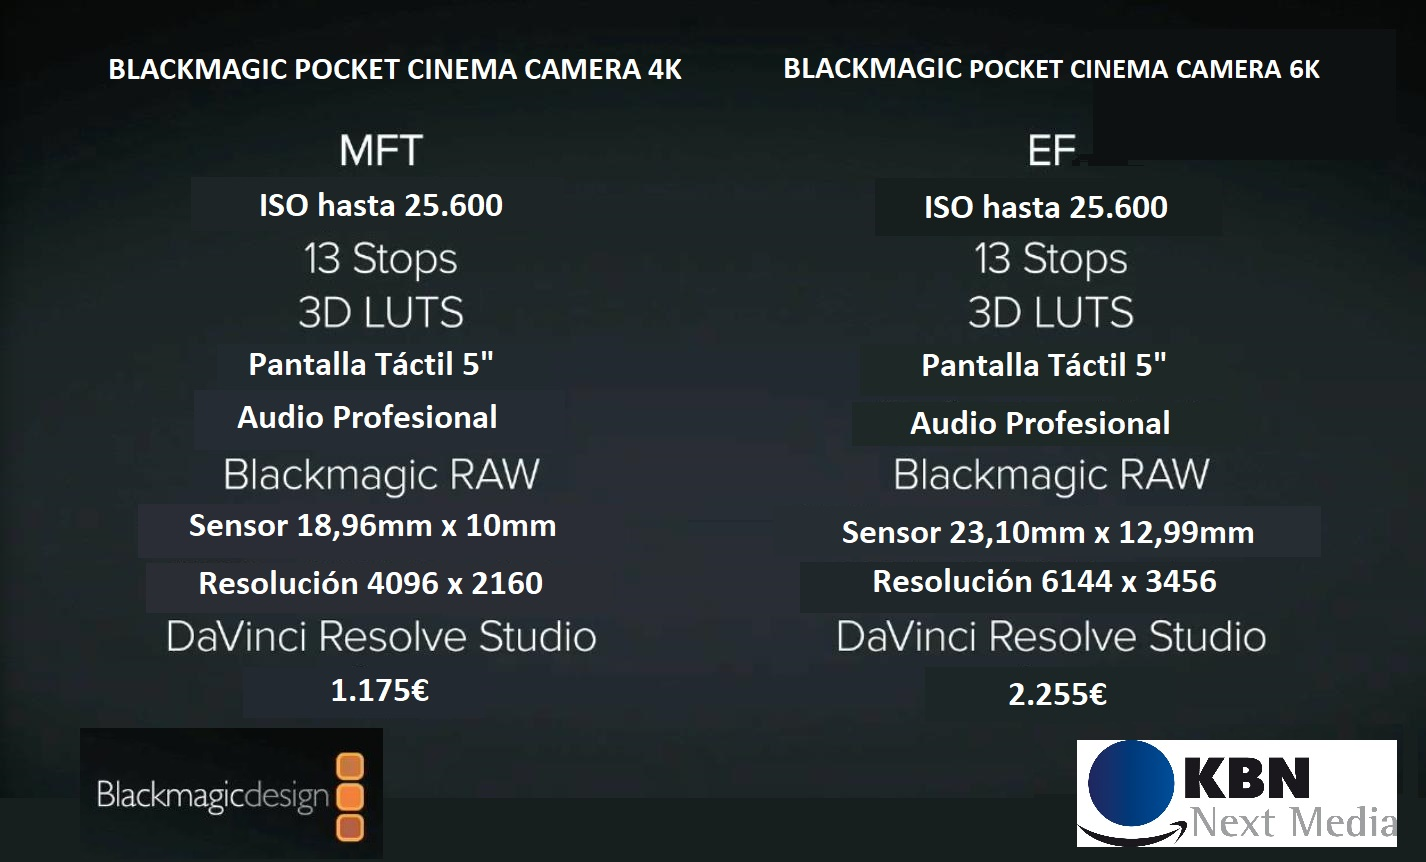 cuadro comparativo Blackmagic Pocket